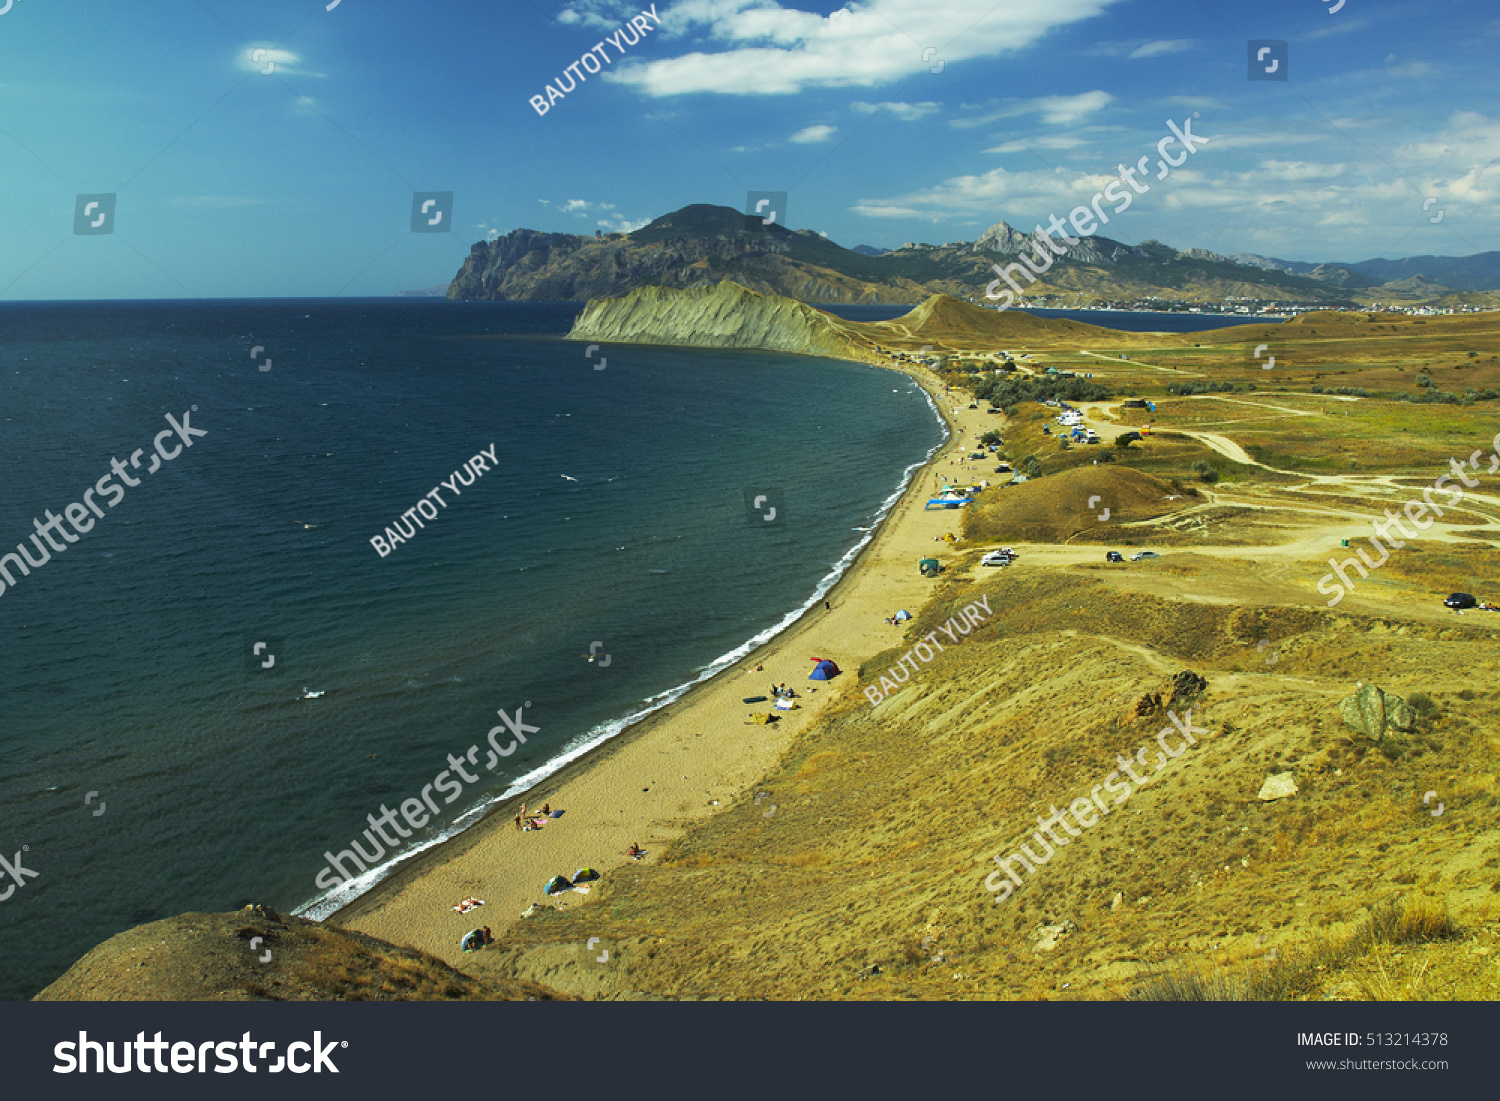 Silent Cove in Koktebel: description, how to get, reviews 33